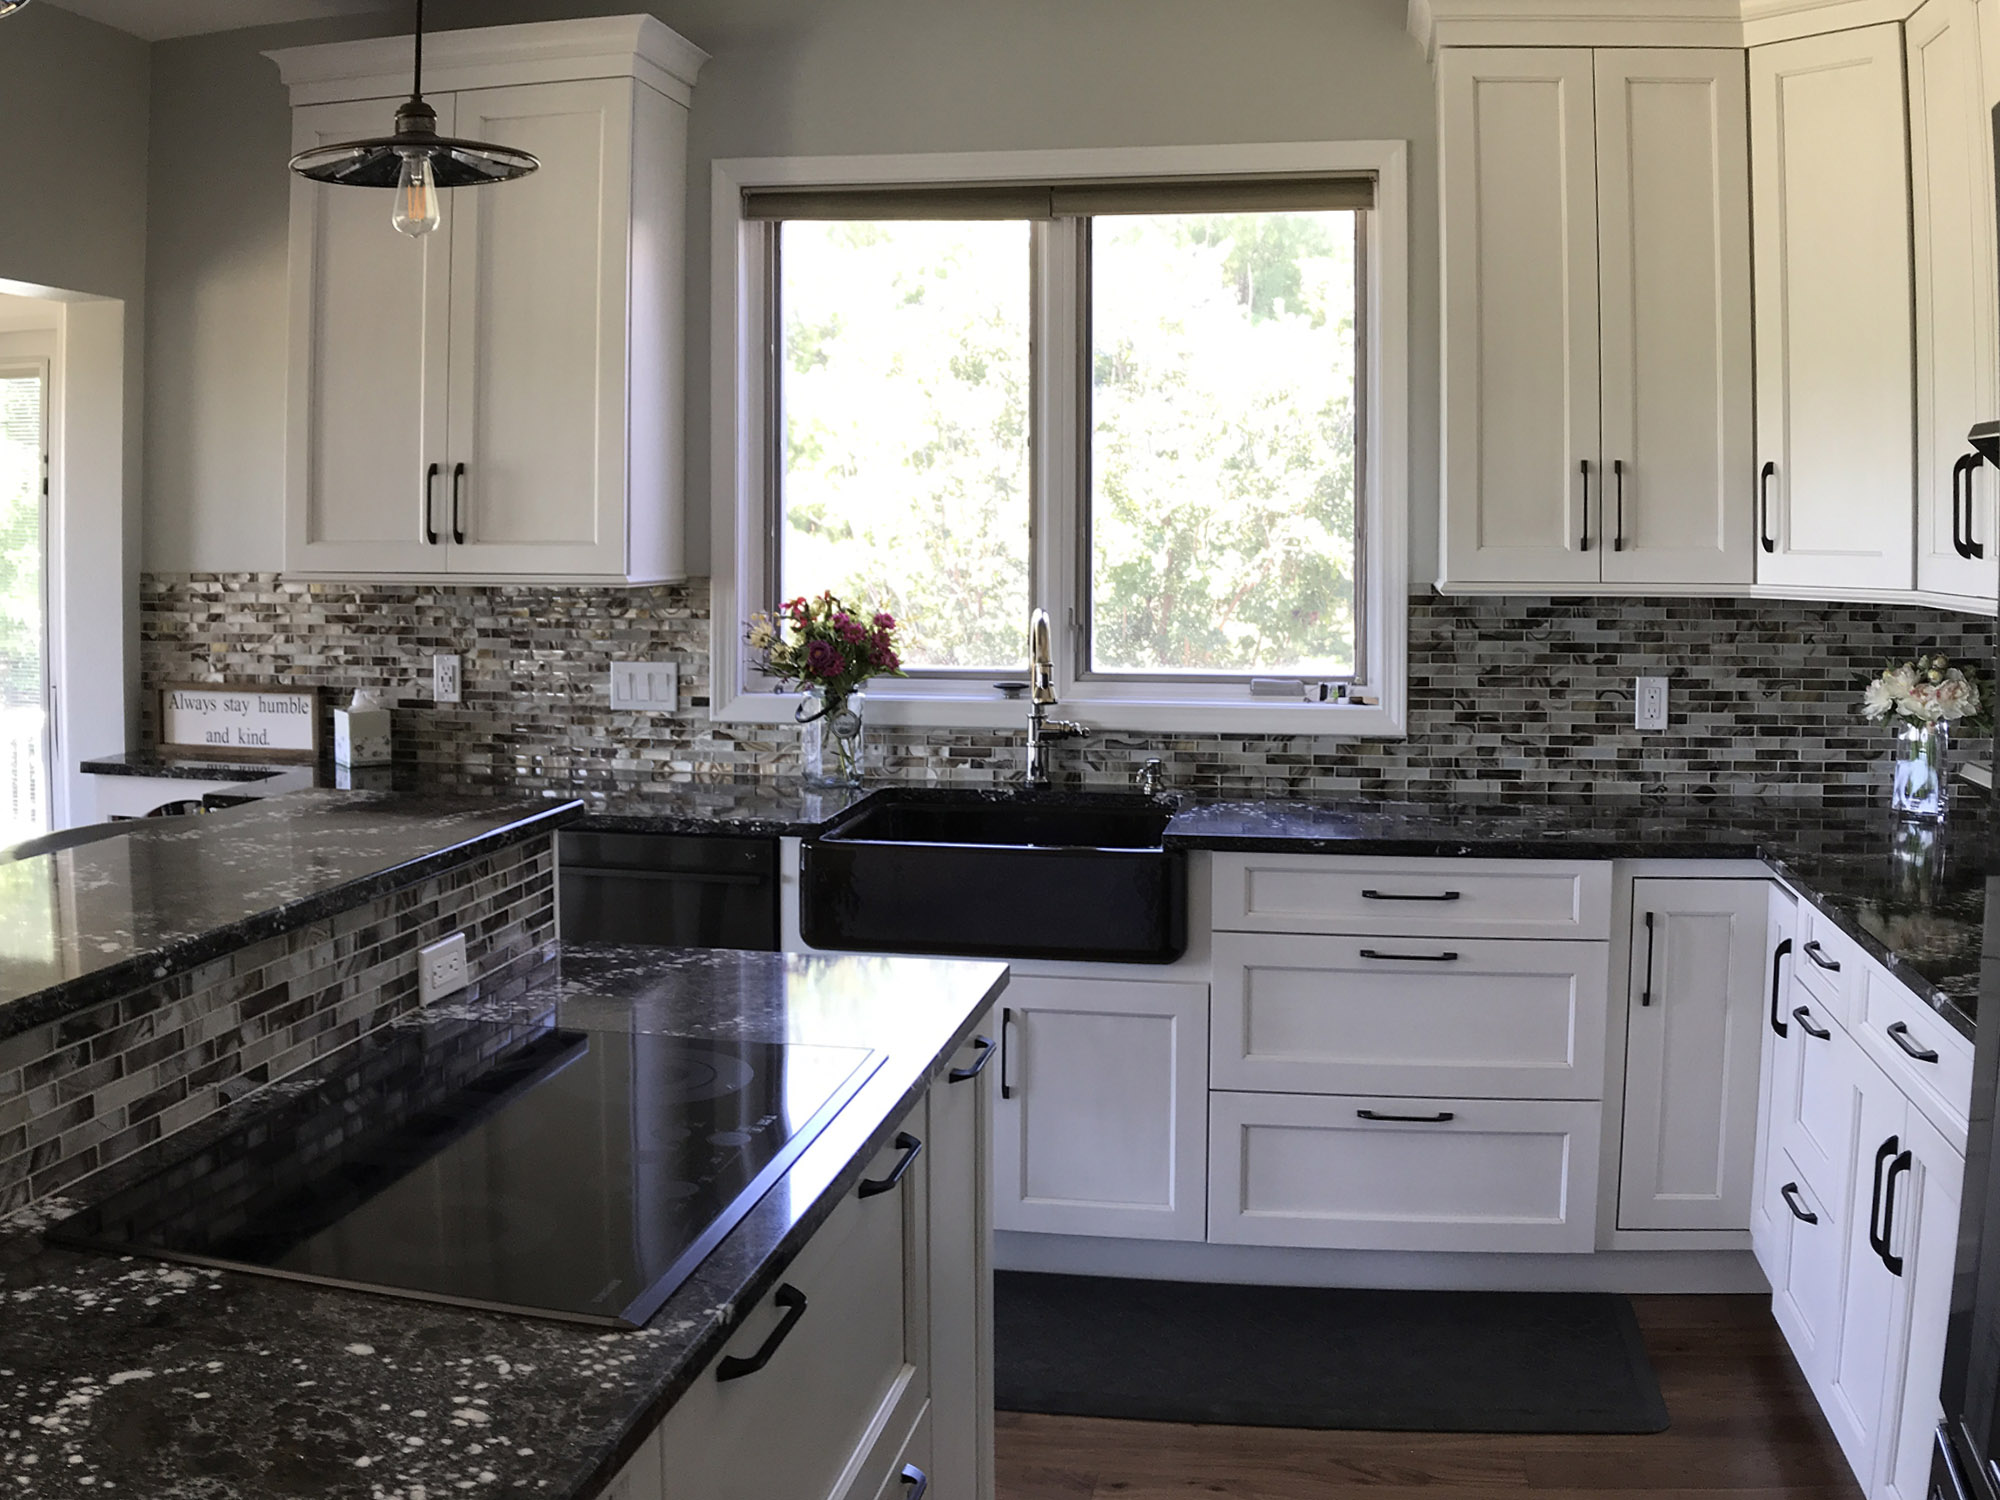 Kitchen with white cabinets and black farmhouse sink